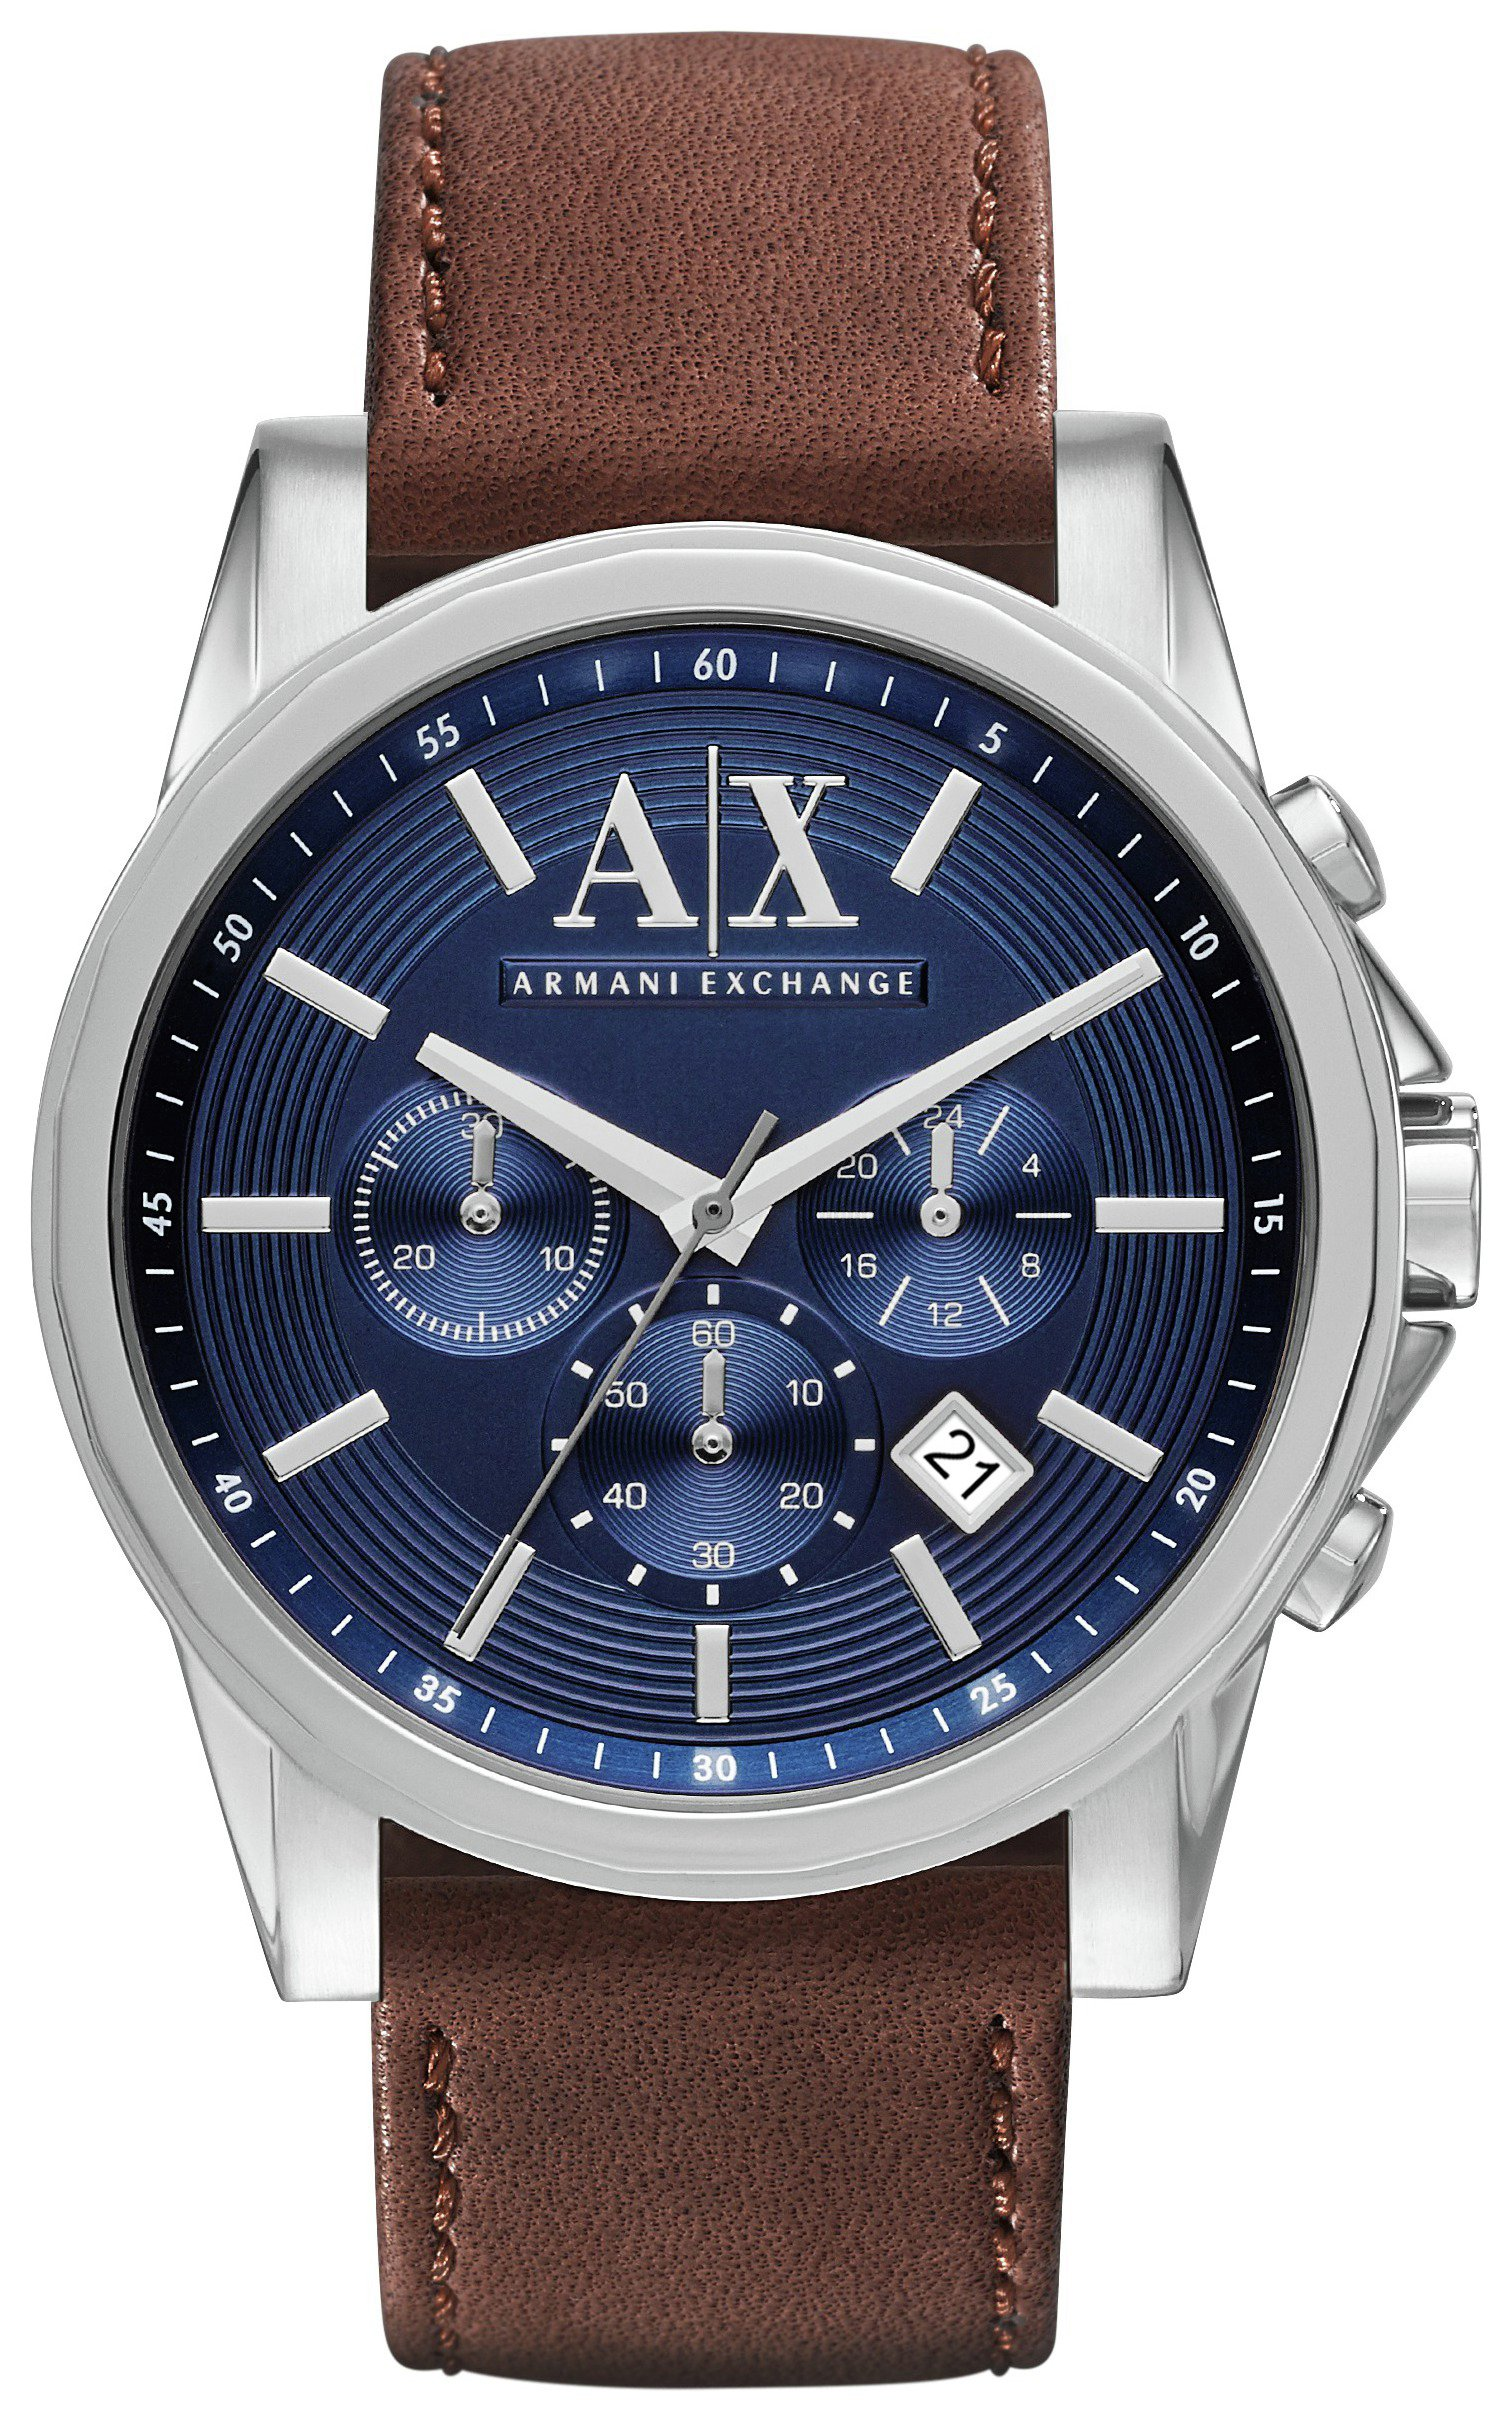 Image of Armani Exchange AX2501 Brown/Navy Chronograph - Watch